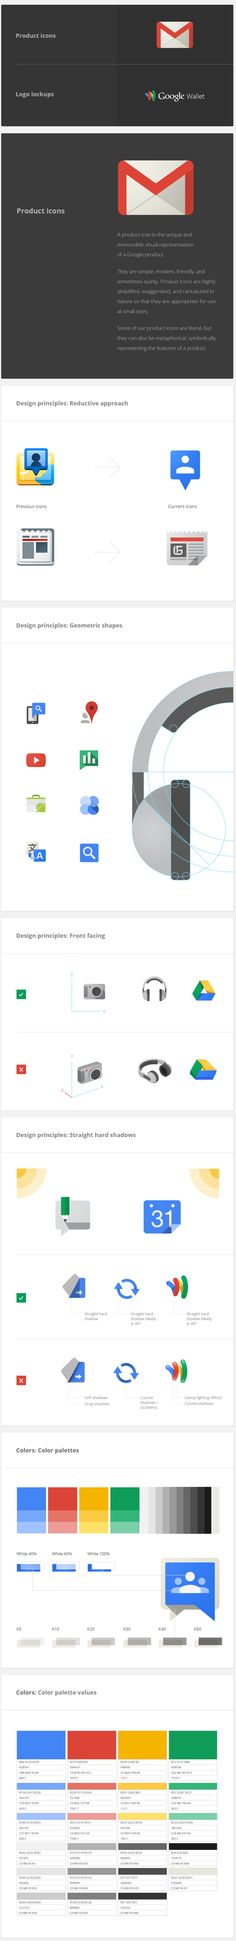 Google Visual Assets Guidelines - Part 1 on Behance